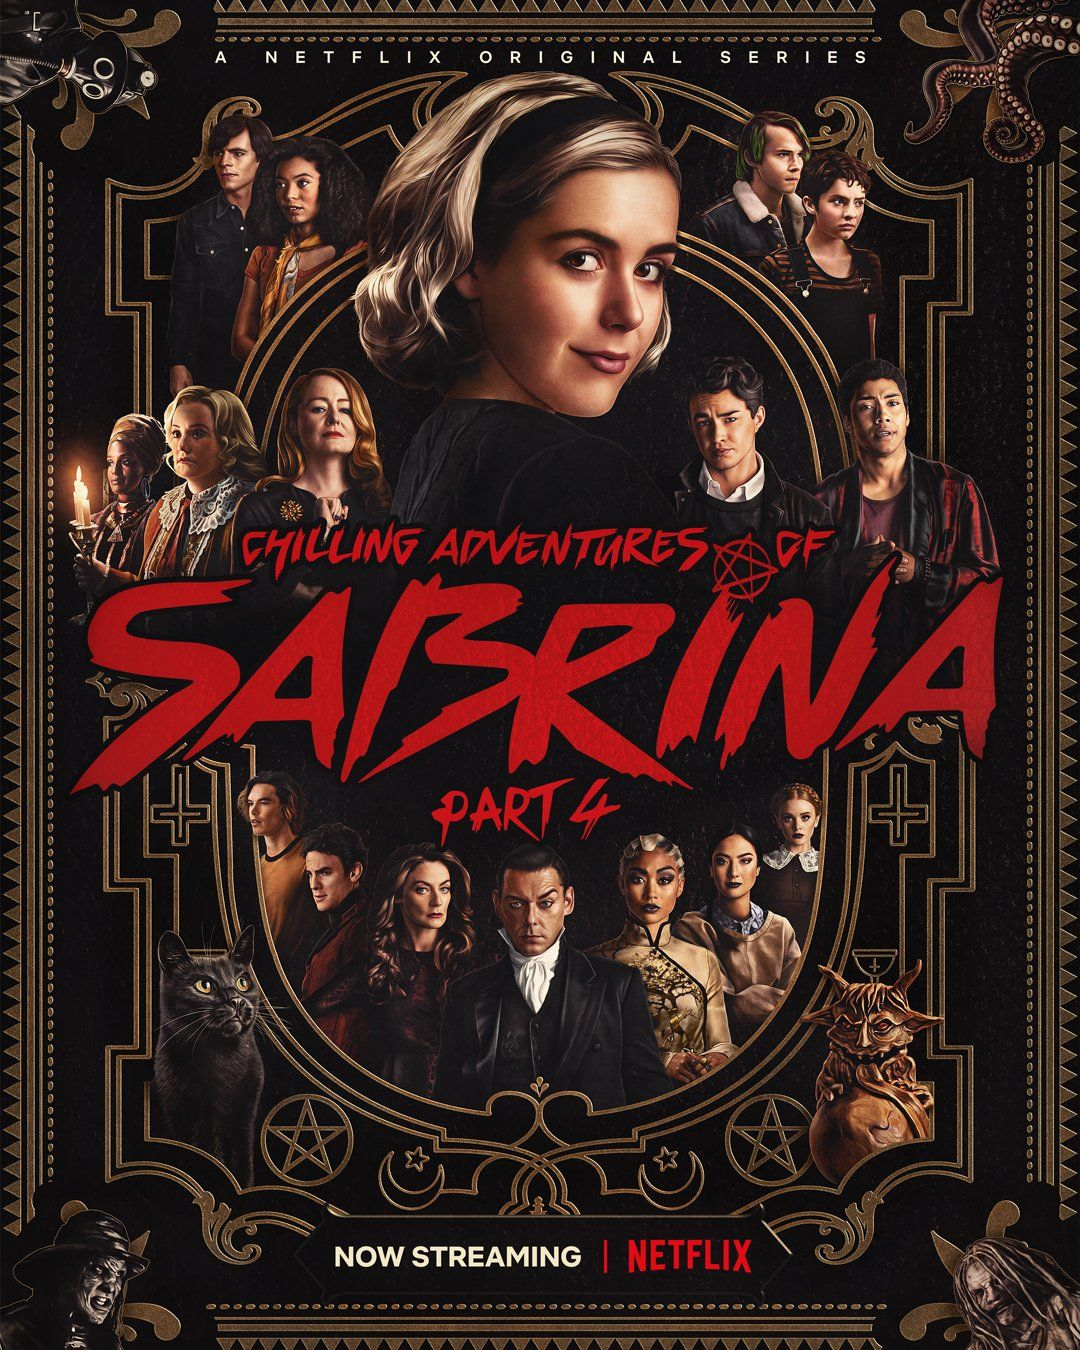 Chilling Adventures of Sabrina ne zaman